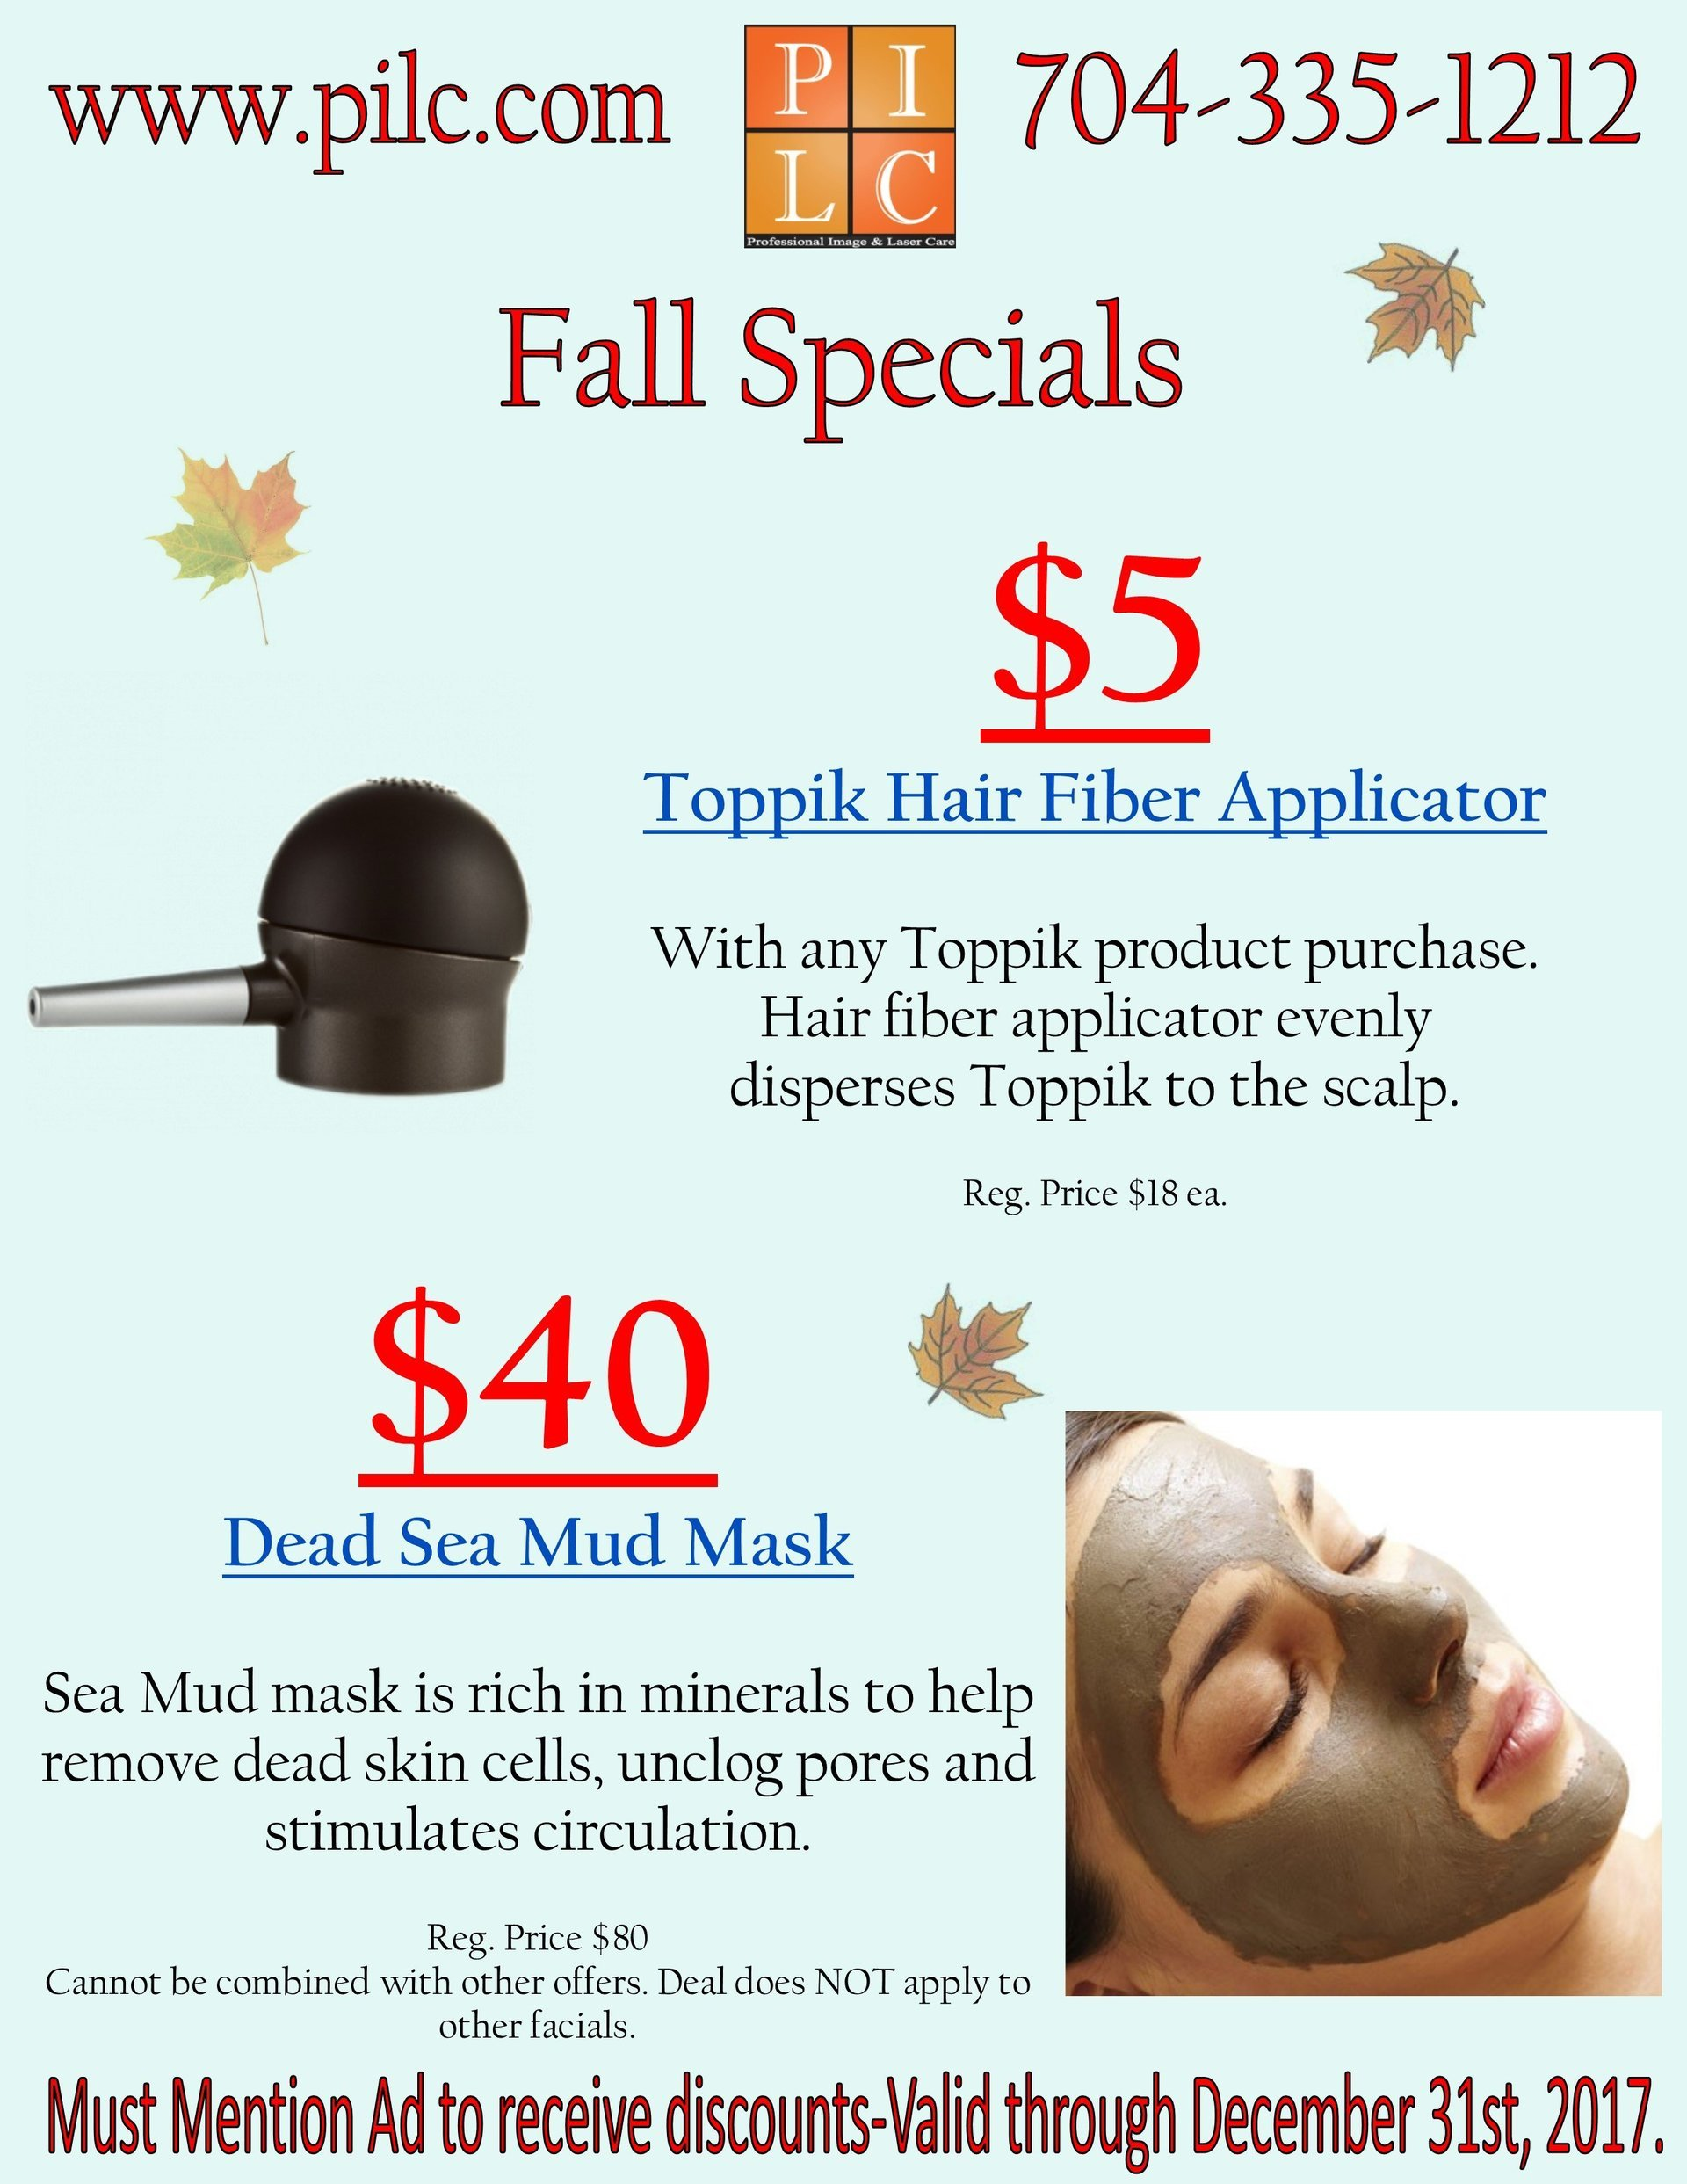 Charlotte MedSpa Specials Discounts Treatments Products